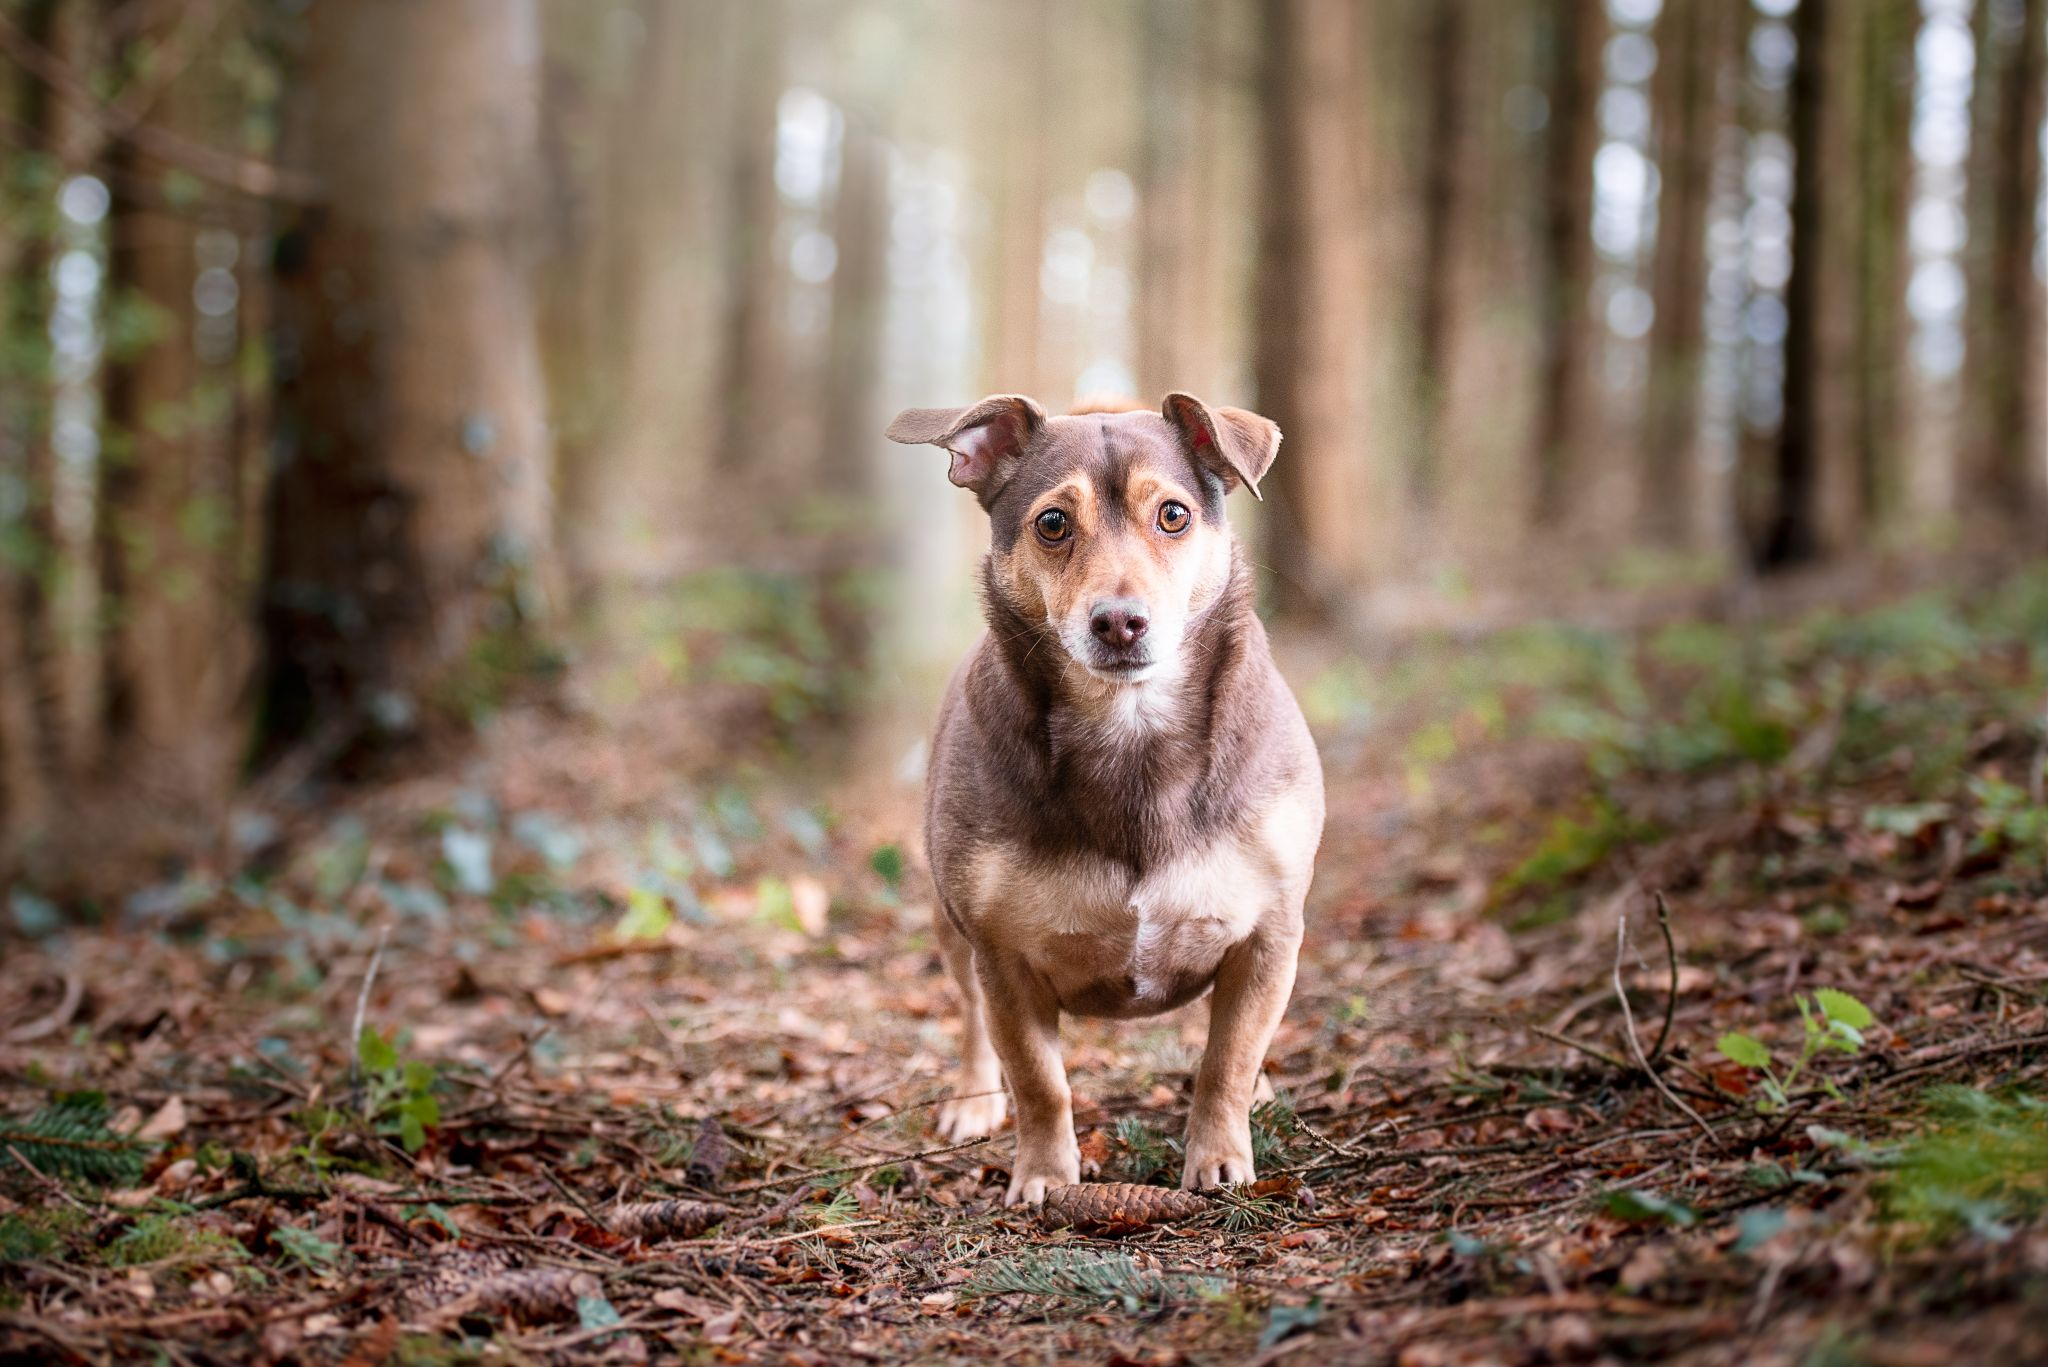 Jack Russell terrier in woodland